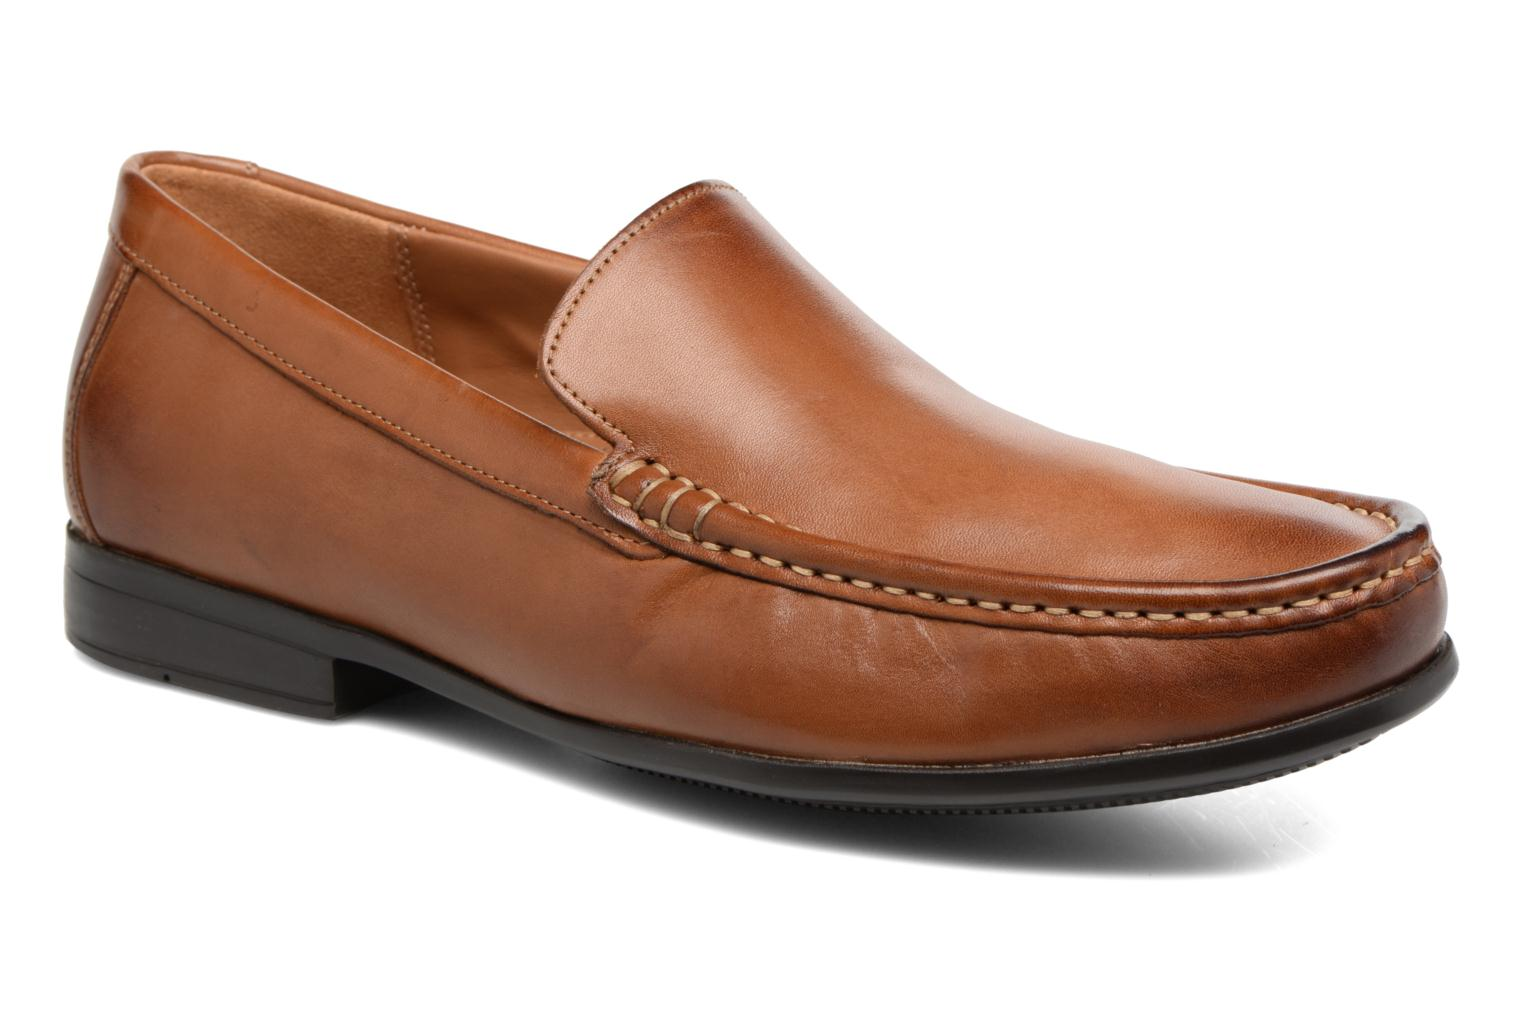 Plain Clarks Leather Tan Plain Tan Claude Leather Plain Tan Leather Clarks Claude Clarks Claude twqtx5ArE